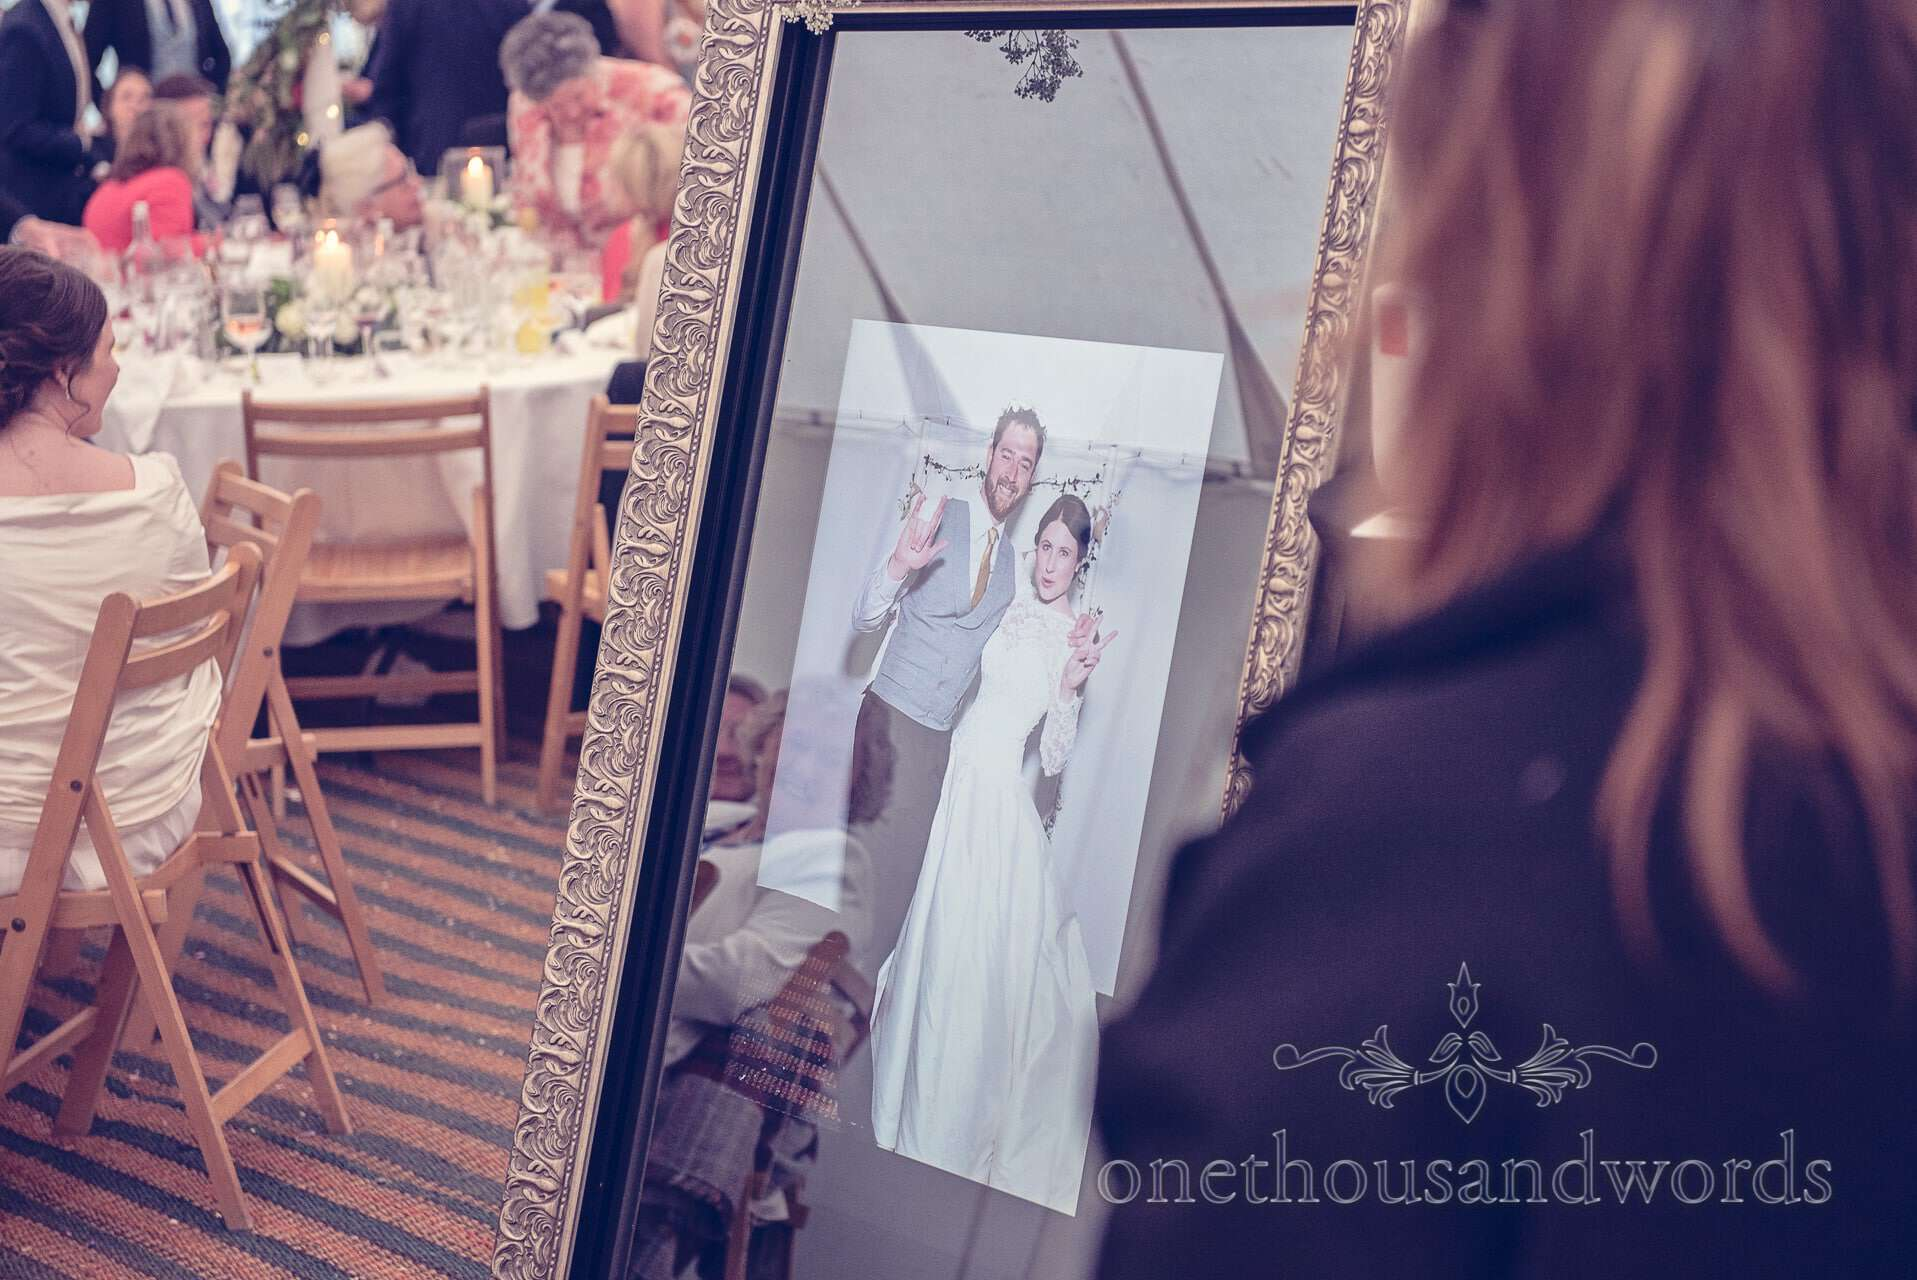 Magic mirror photo booth with bride and groom at wedding